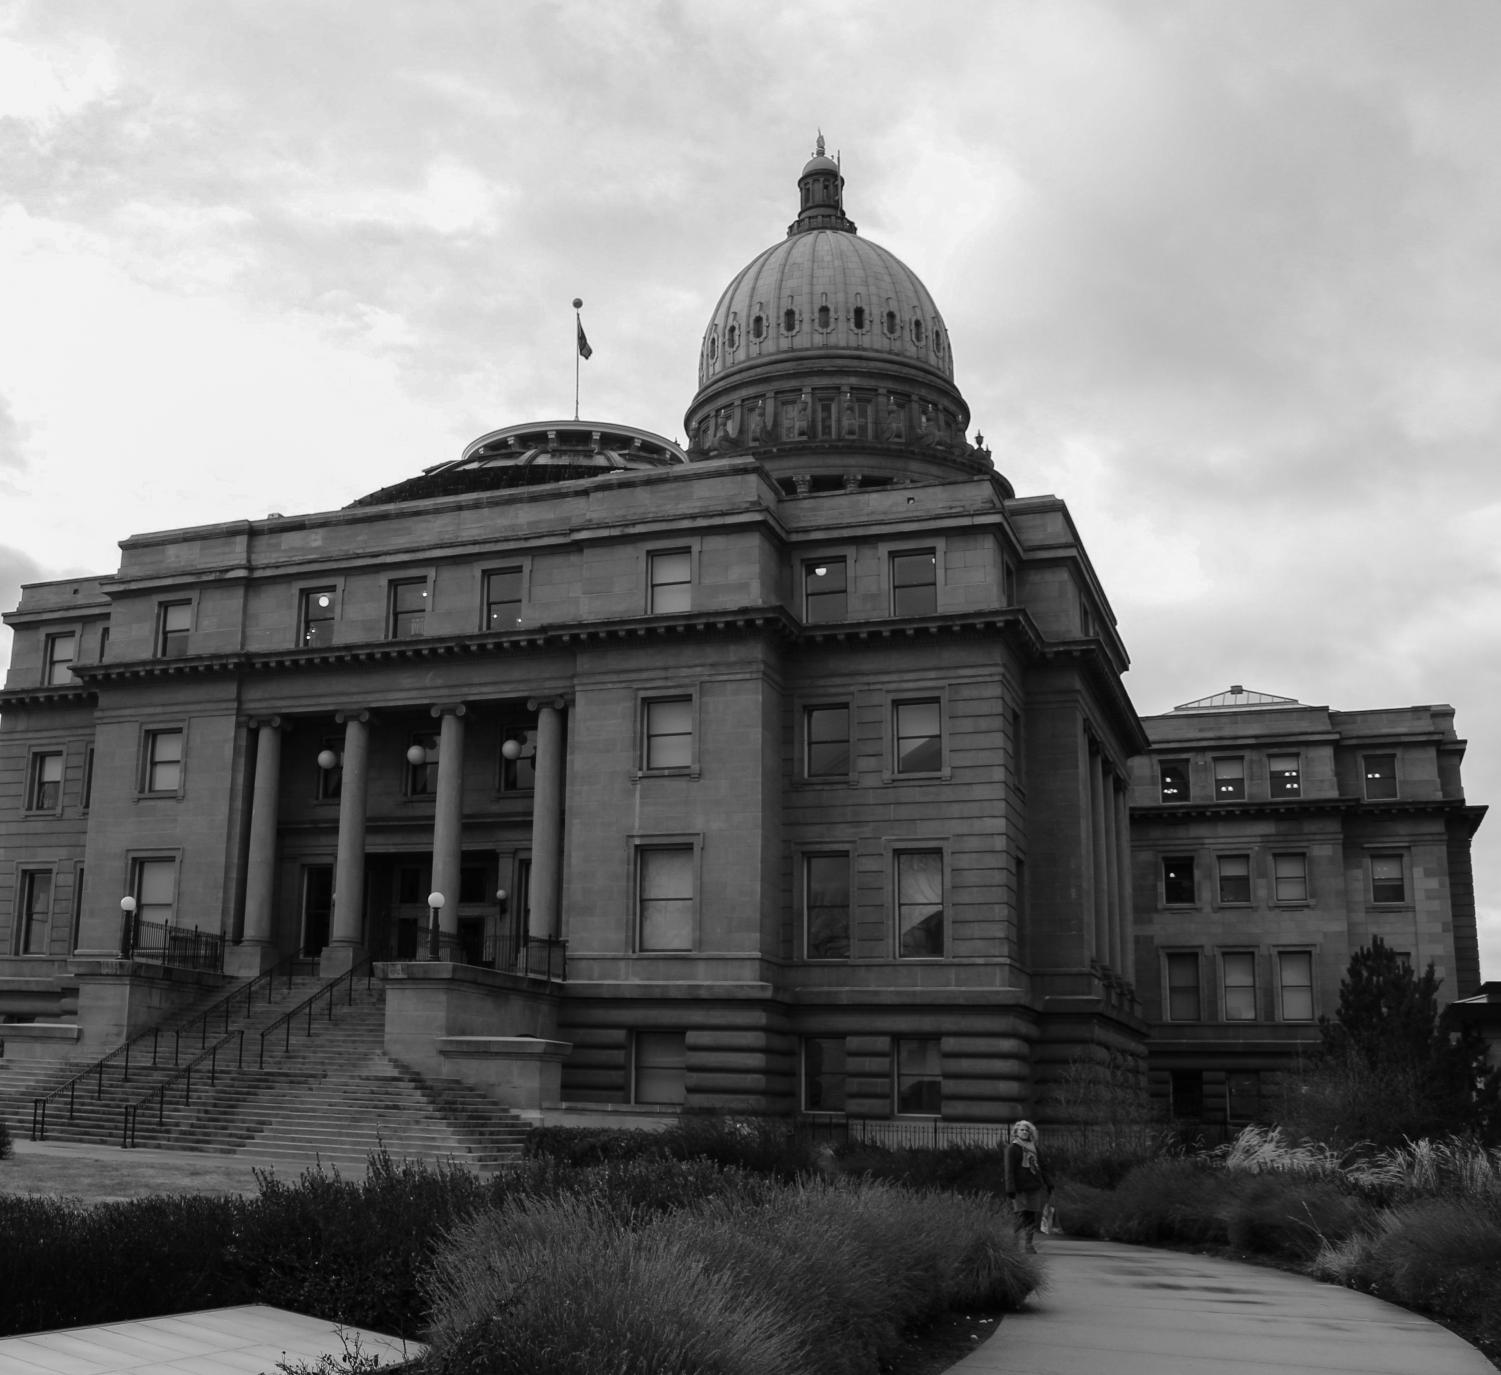 The Idaho State Capitol Building in Boise, Idaho